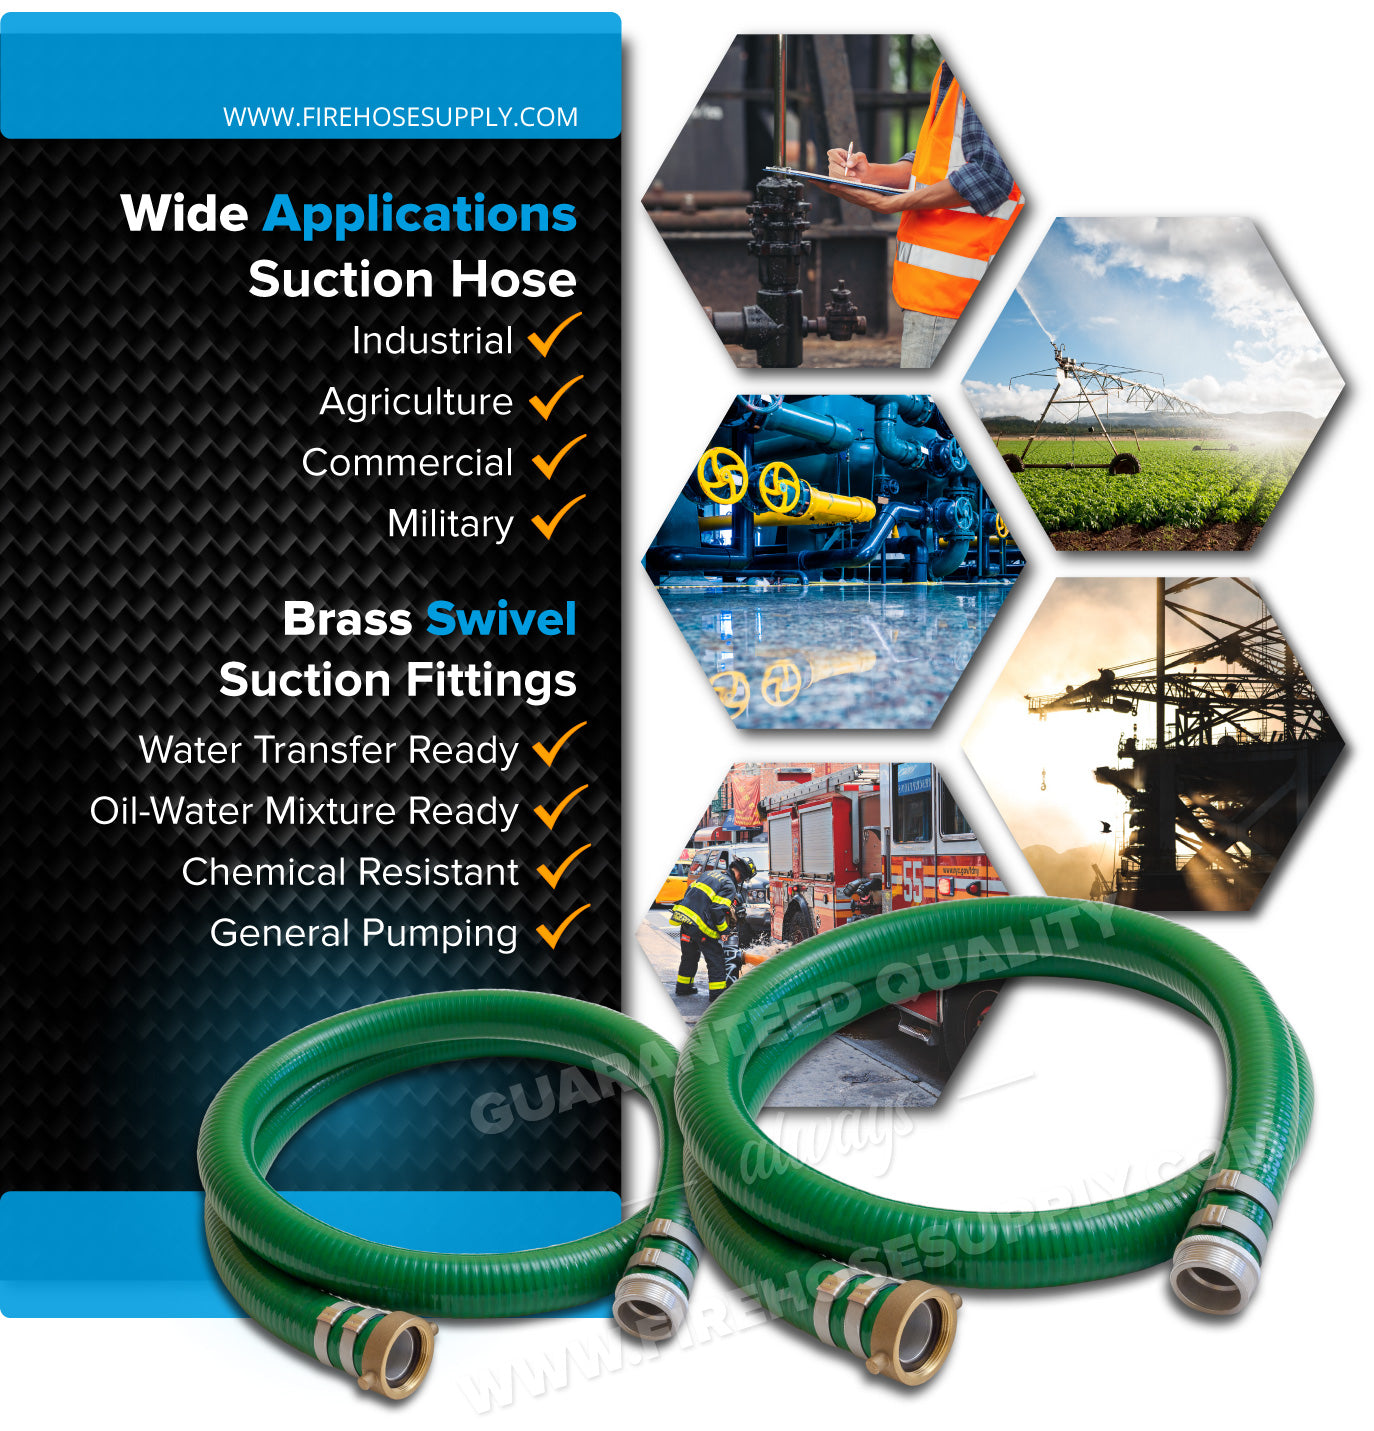 1.5 Inch Threaded Female x Male Green Suction Hose Wide Applications